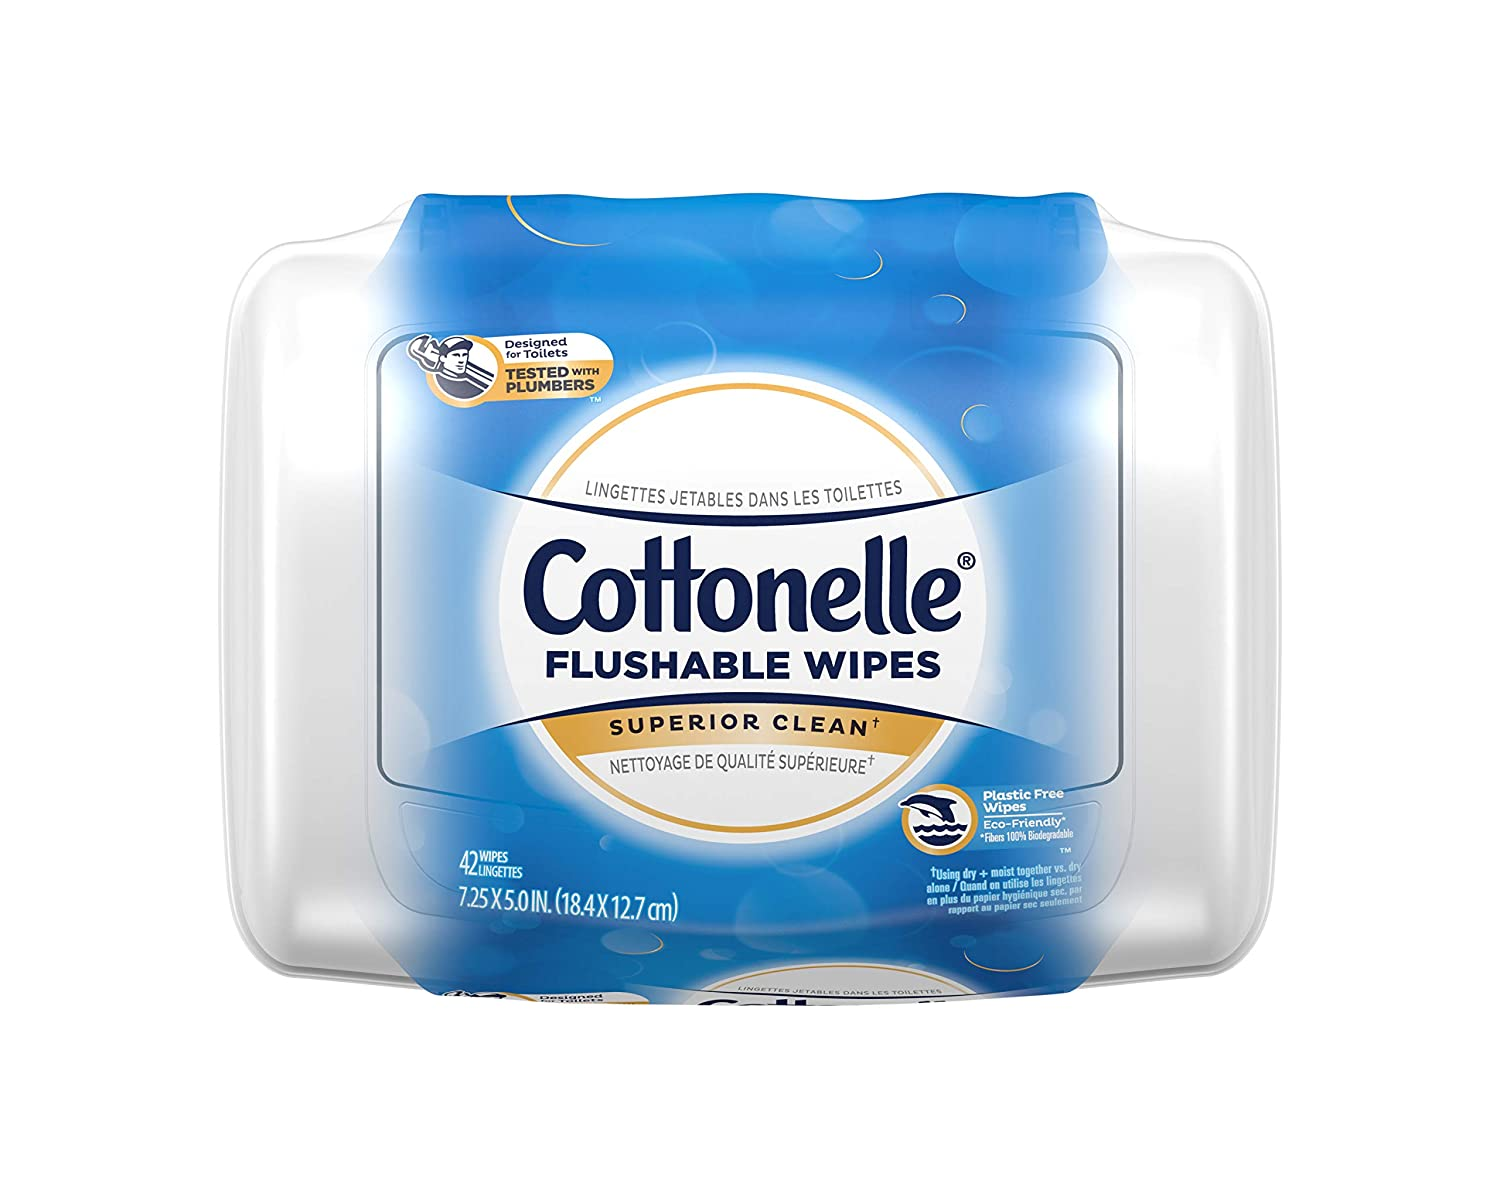 Cottonelle FreshCare Flushable Wipes for Adults, Wet Wipes, Alcohol Free, 1 Pack of 42 Wet Wipes